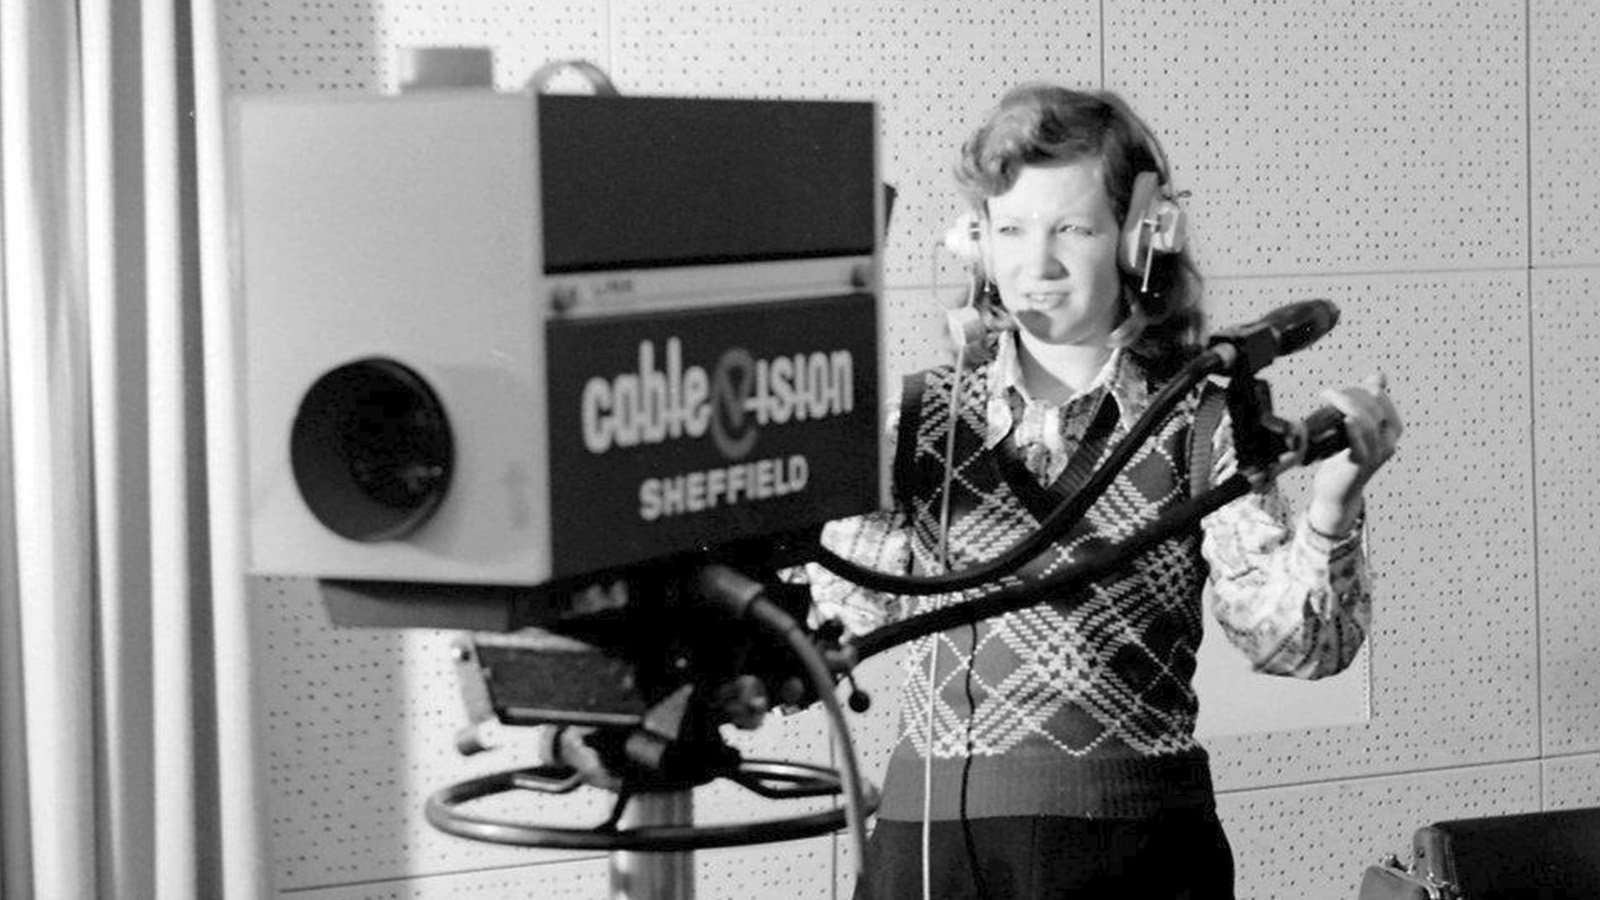 Sheffield Cablevision Camera Operator